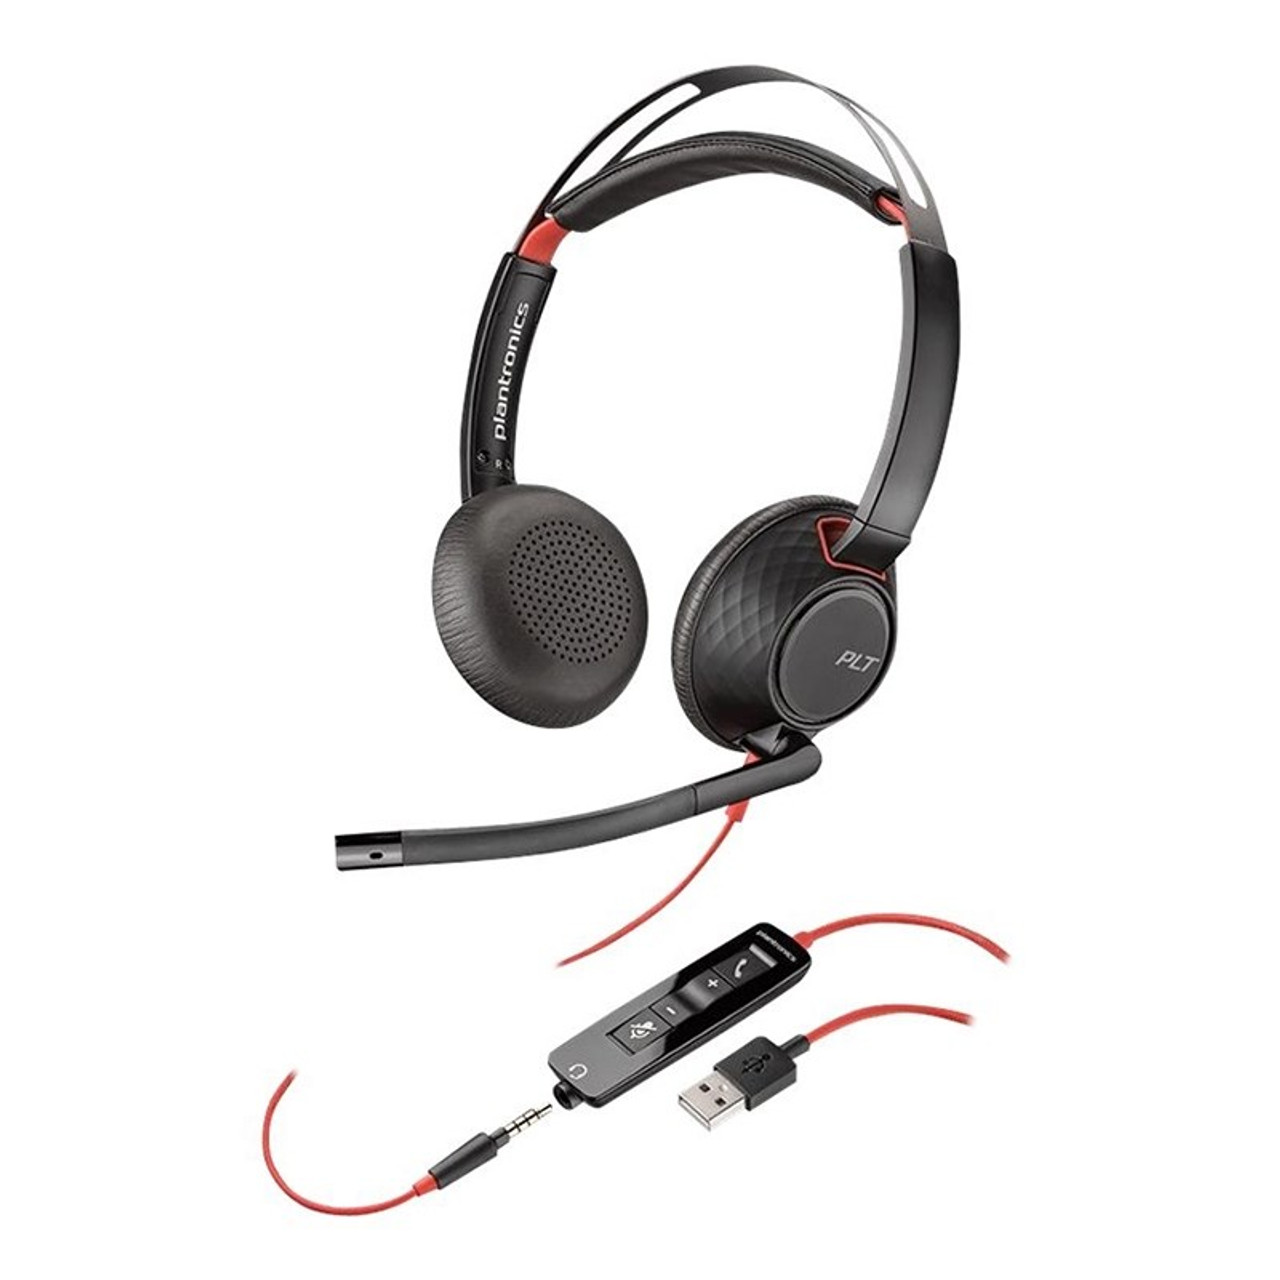 Image for Plantronics Blackwire C5220 Stereo UC USB-A Headset w/ 3.5mm (OEM Pack) CX Computer Superstore